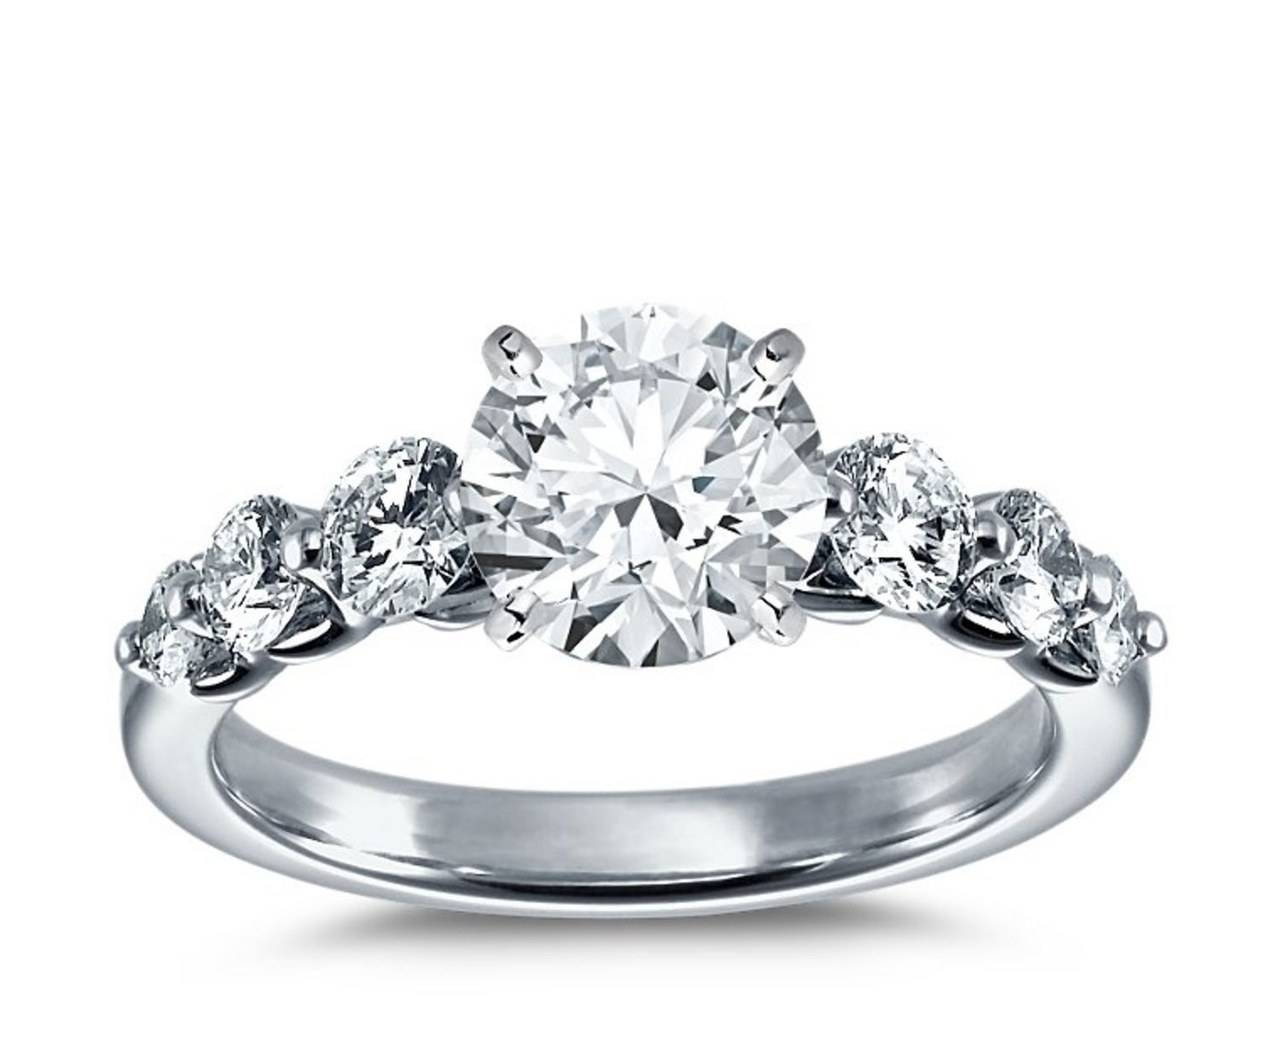 Blue Nile's 5 Most Pinned Engagement Rings (View 5 of 15)